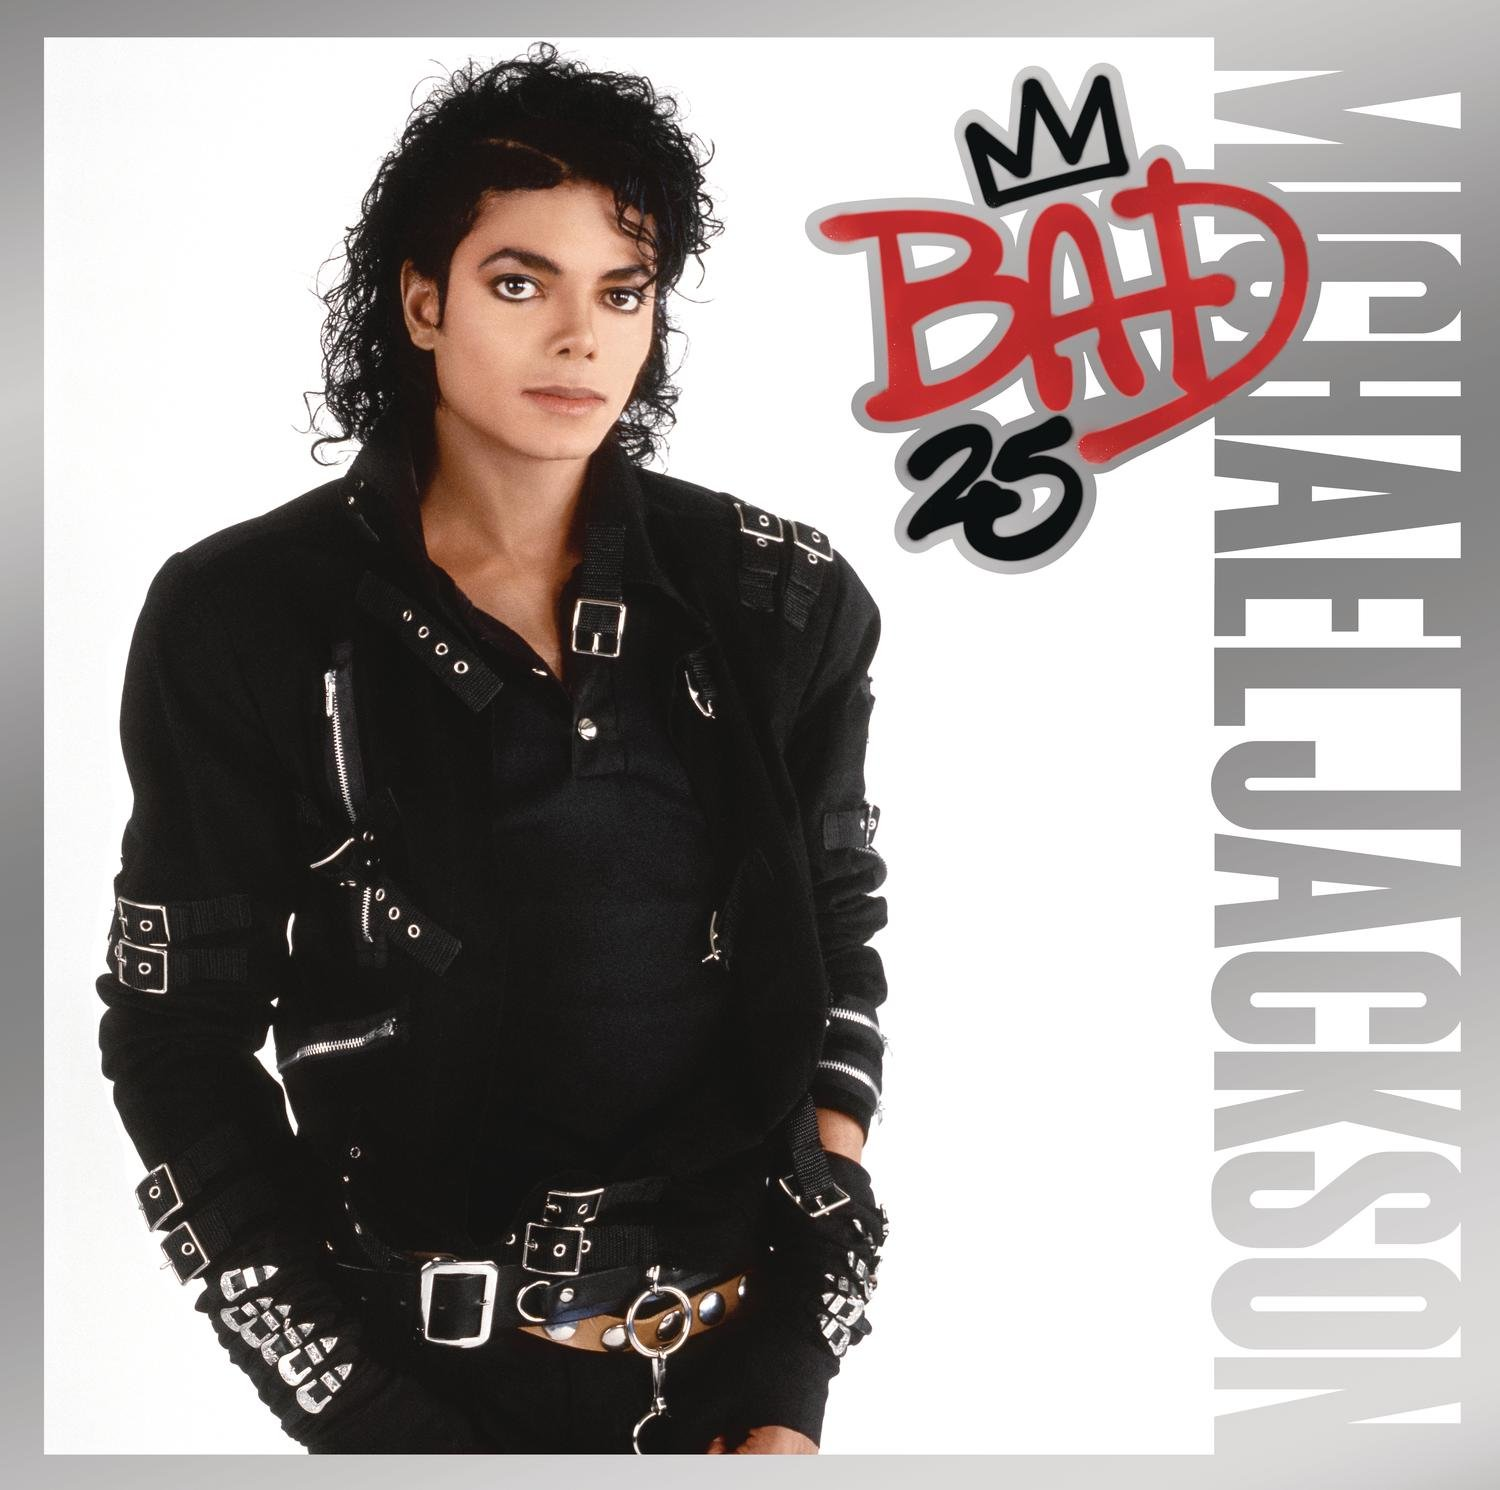 Bad 25 by Sony Legacy